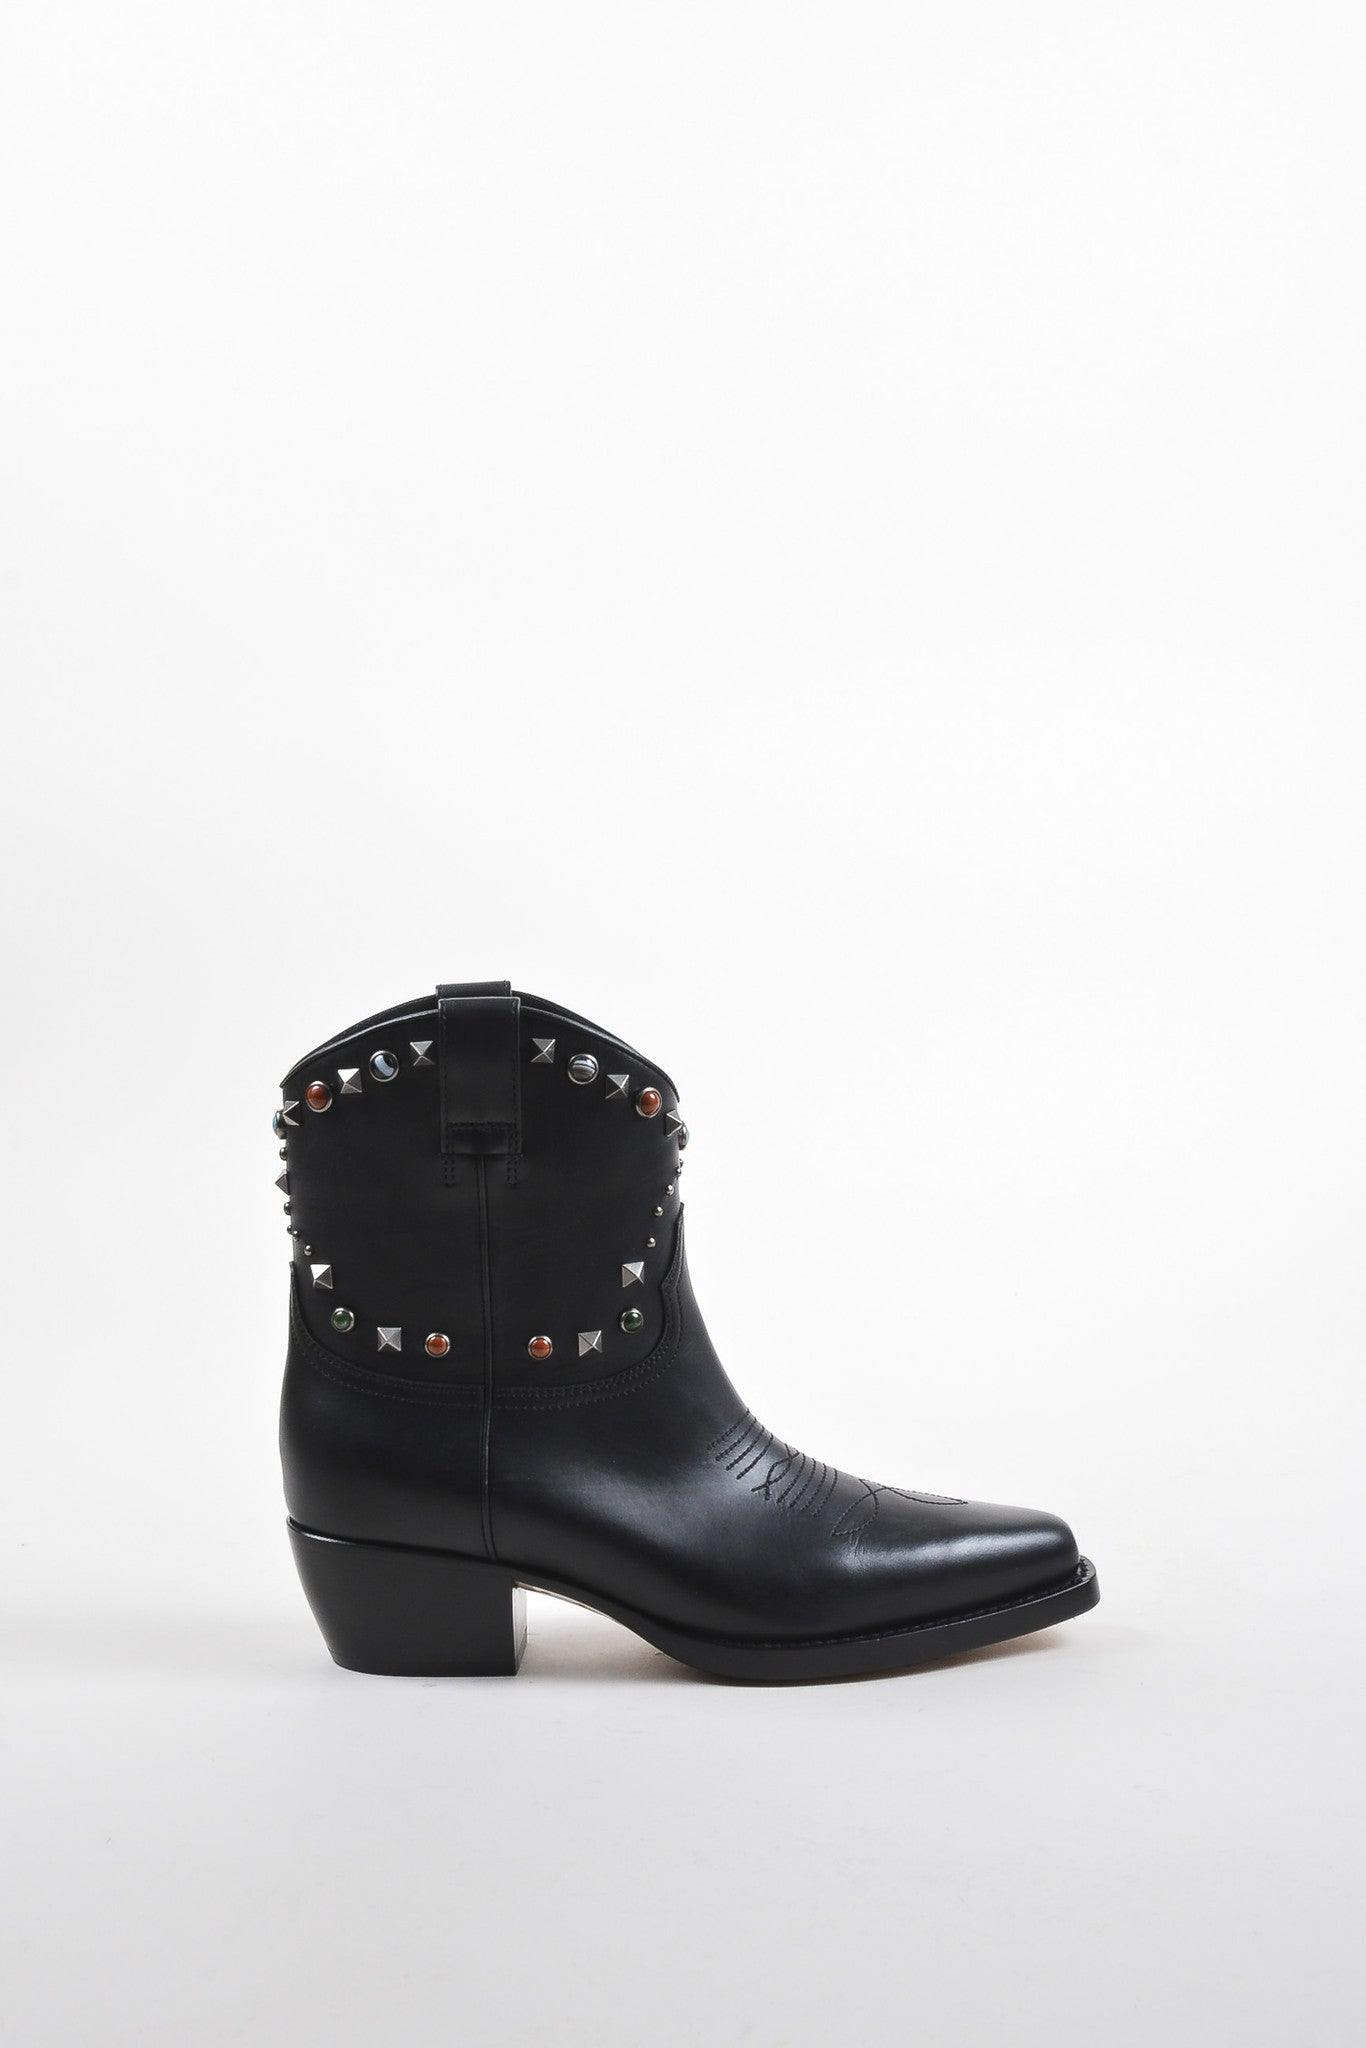 Valentino Garavani Black Leather Texan Rockstud Rolling Boots Sideview